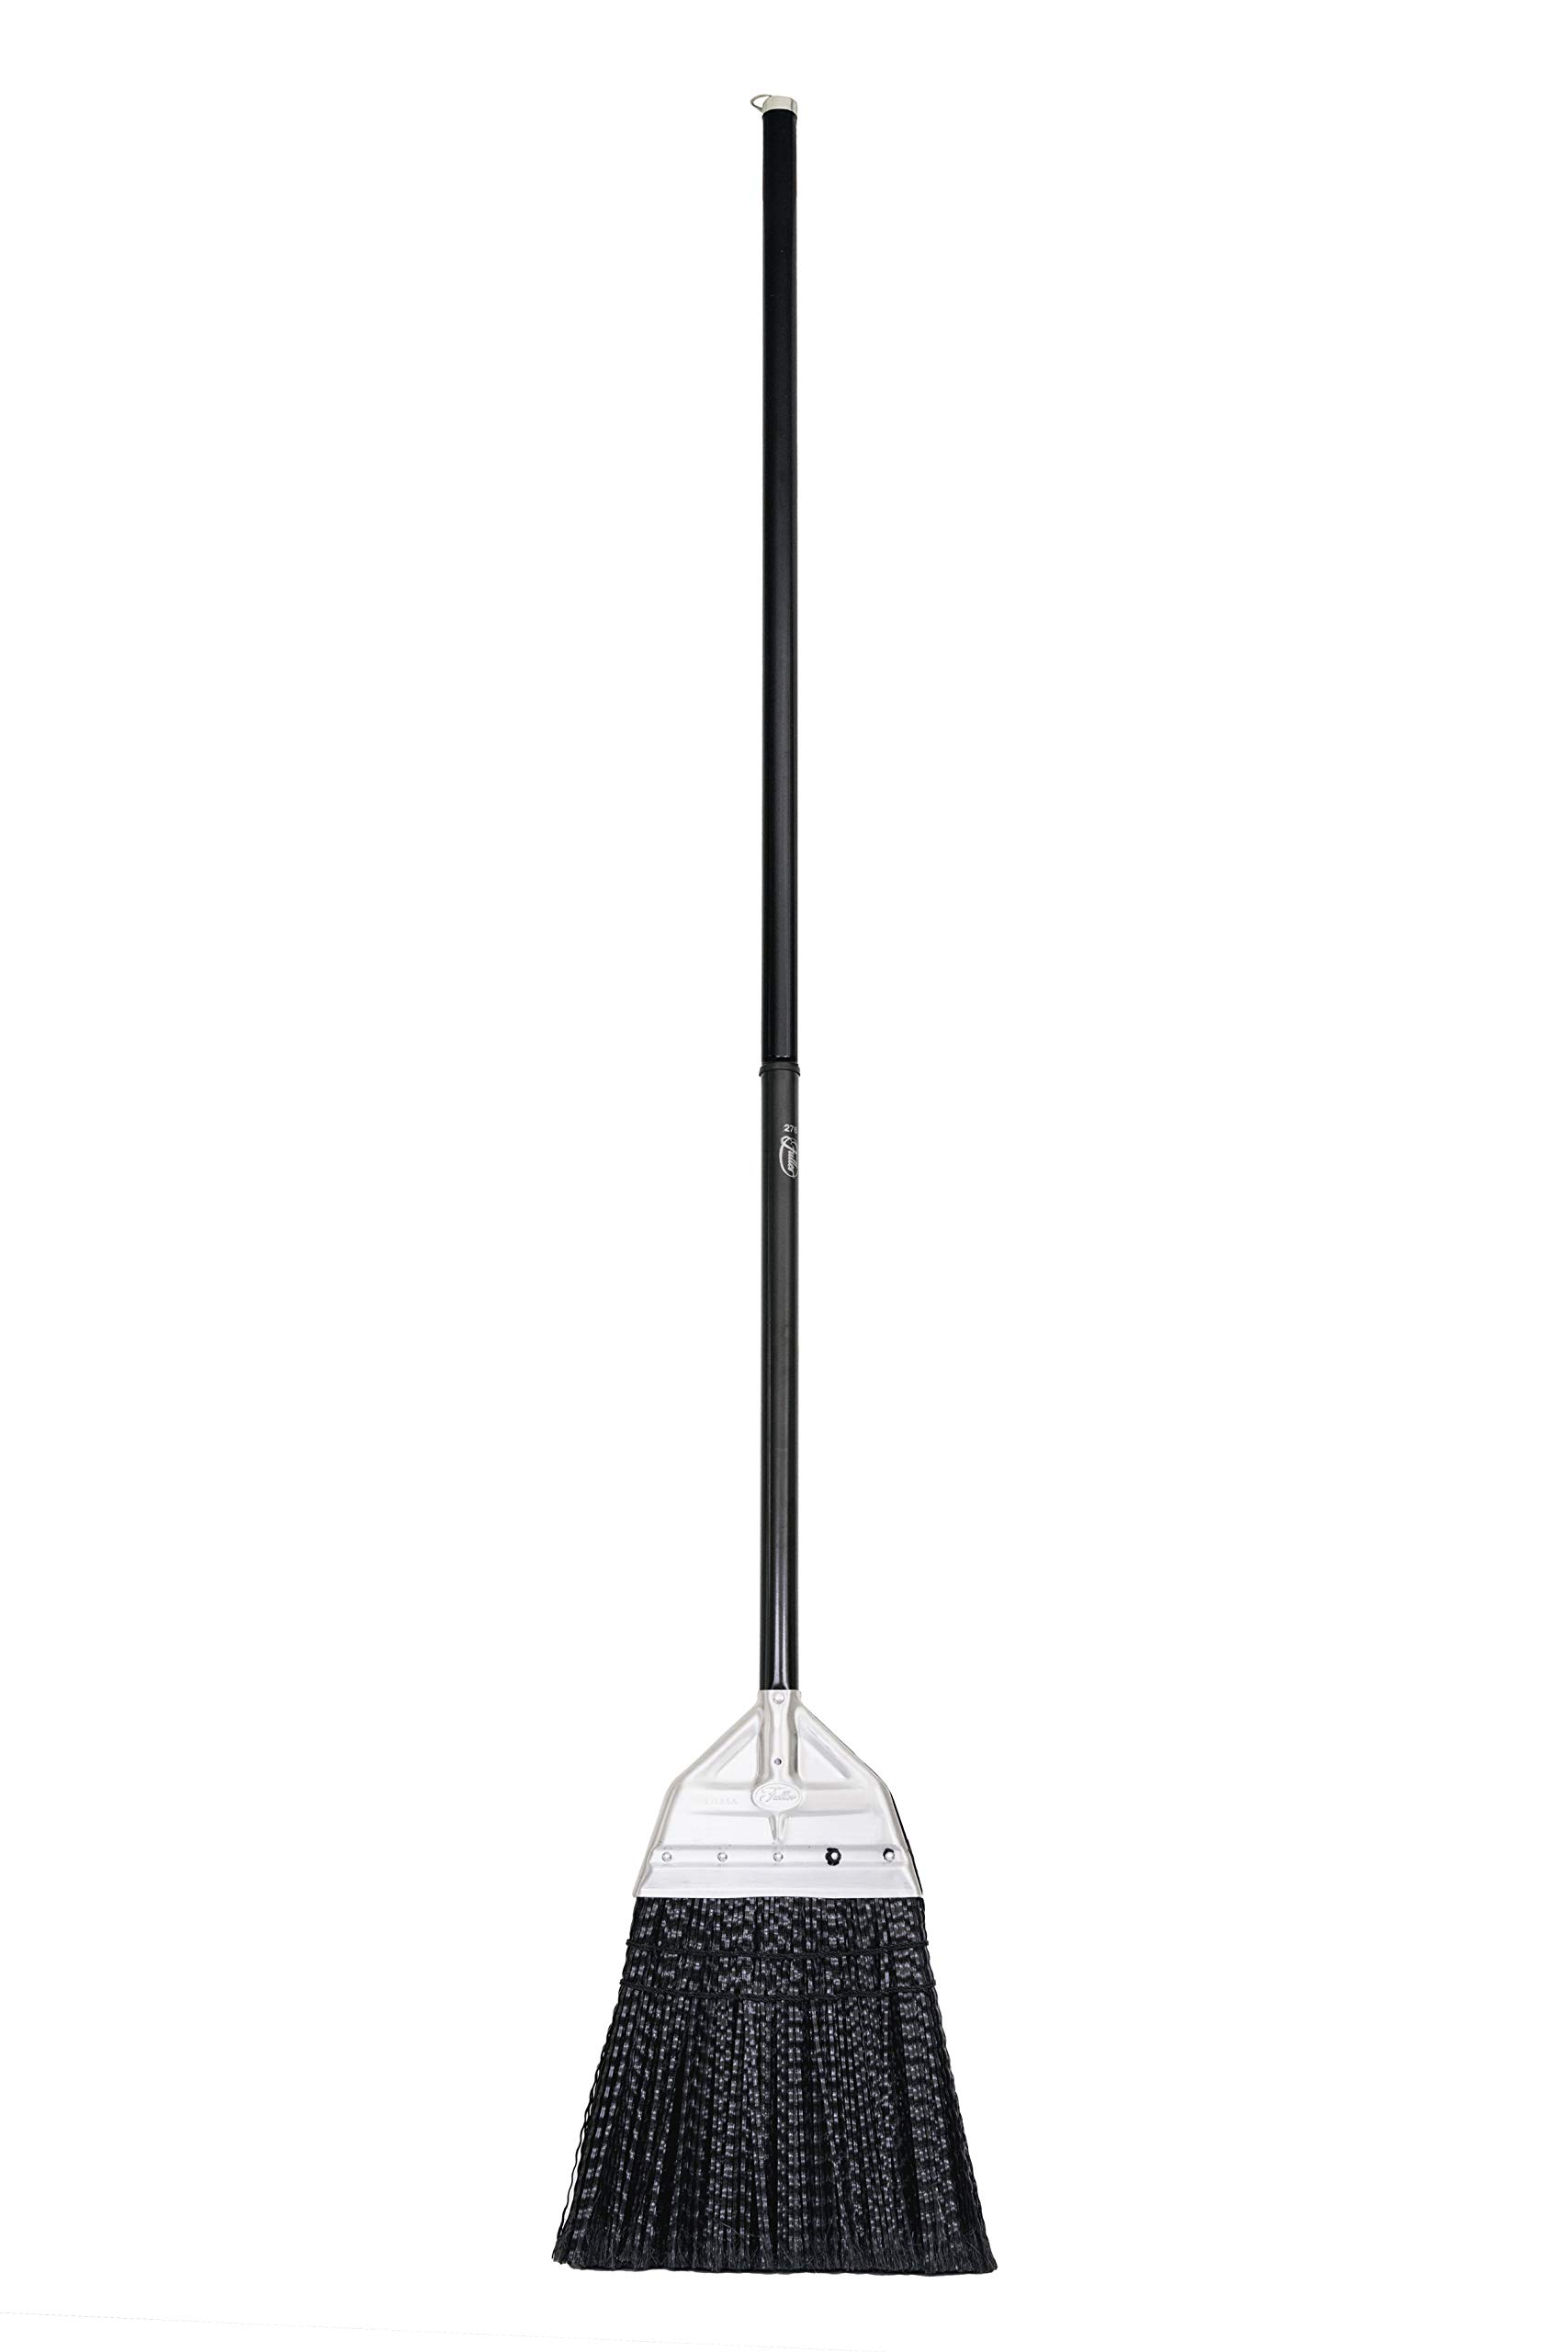 Fuller Brush Broom - Premium Grade Heavy Duty Straight Surface Sweeper w/ Chemical & Grease Proof Bristles For Sweeping All Floor Types Indoor & Outdoor